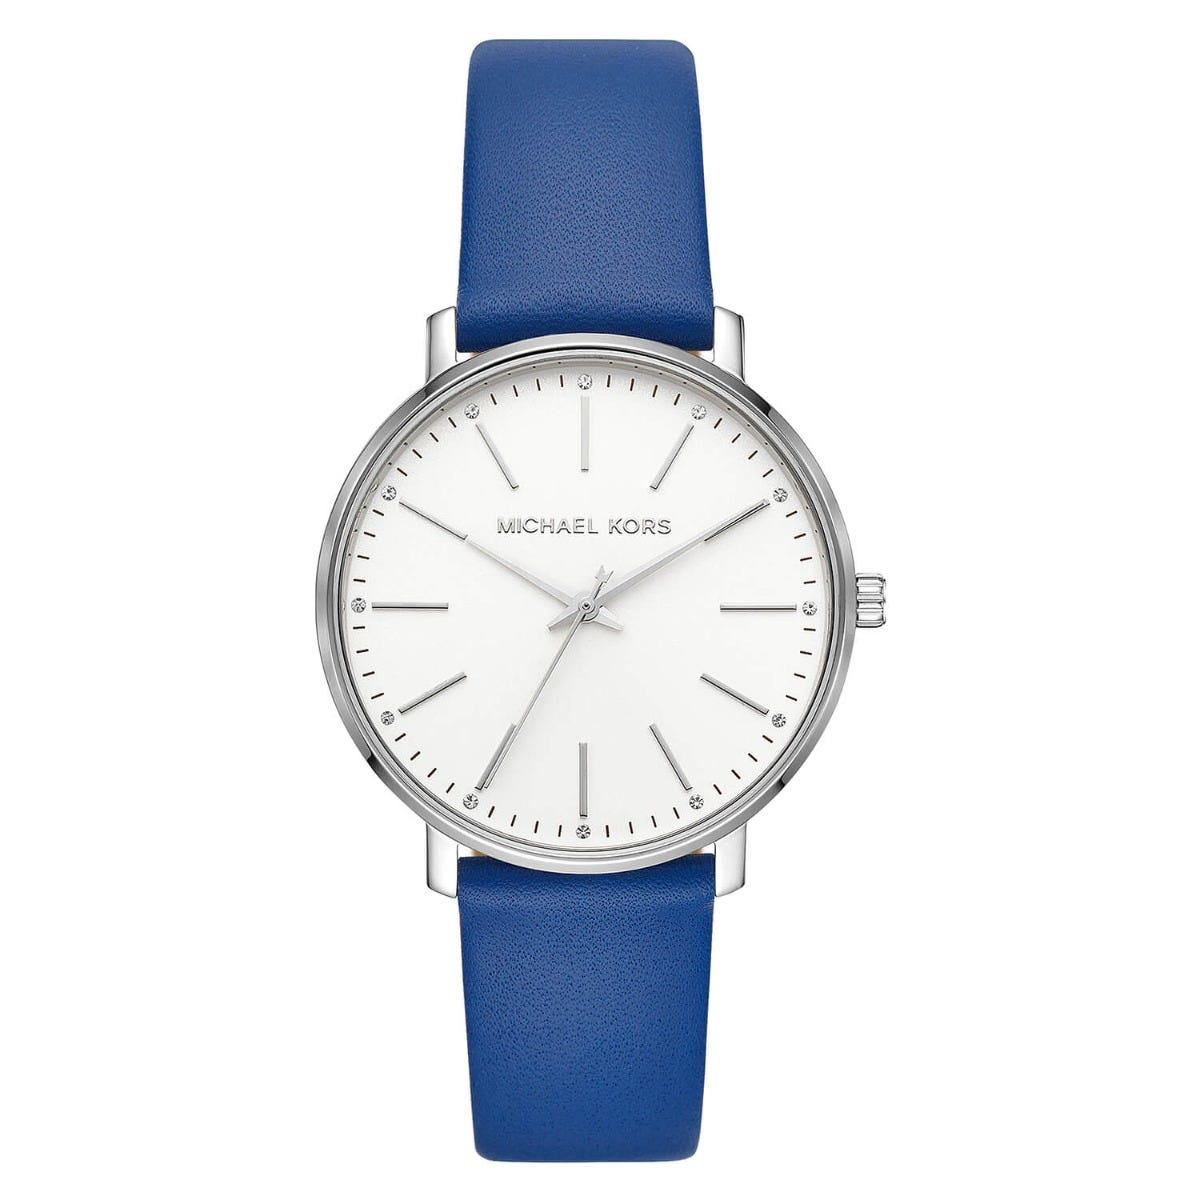 Michael Kors Pyper White Dial Stainless Steel Case Blue Strap Watch